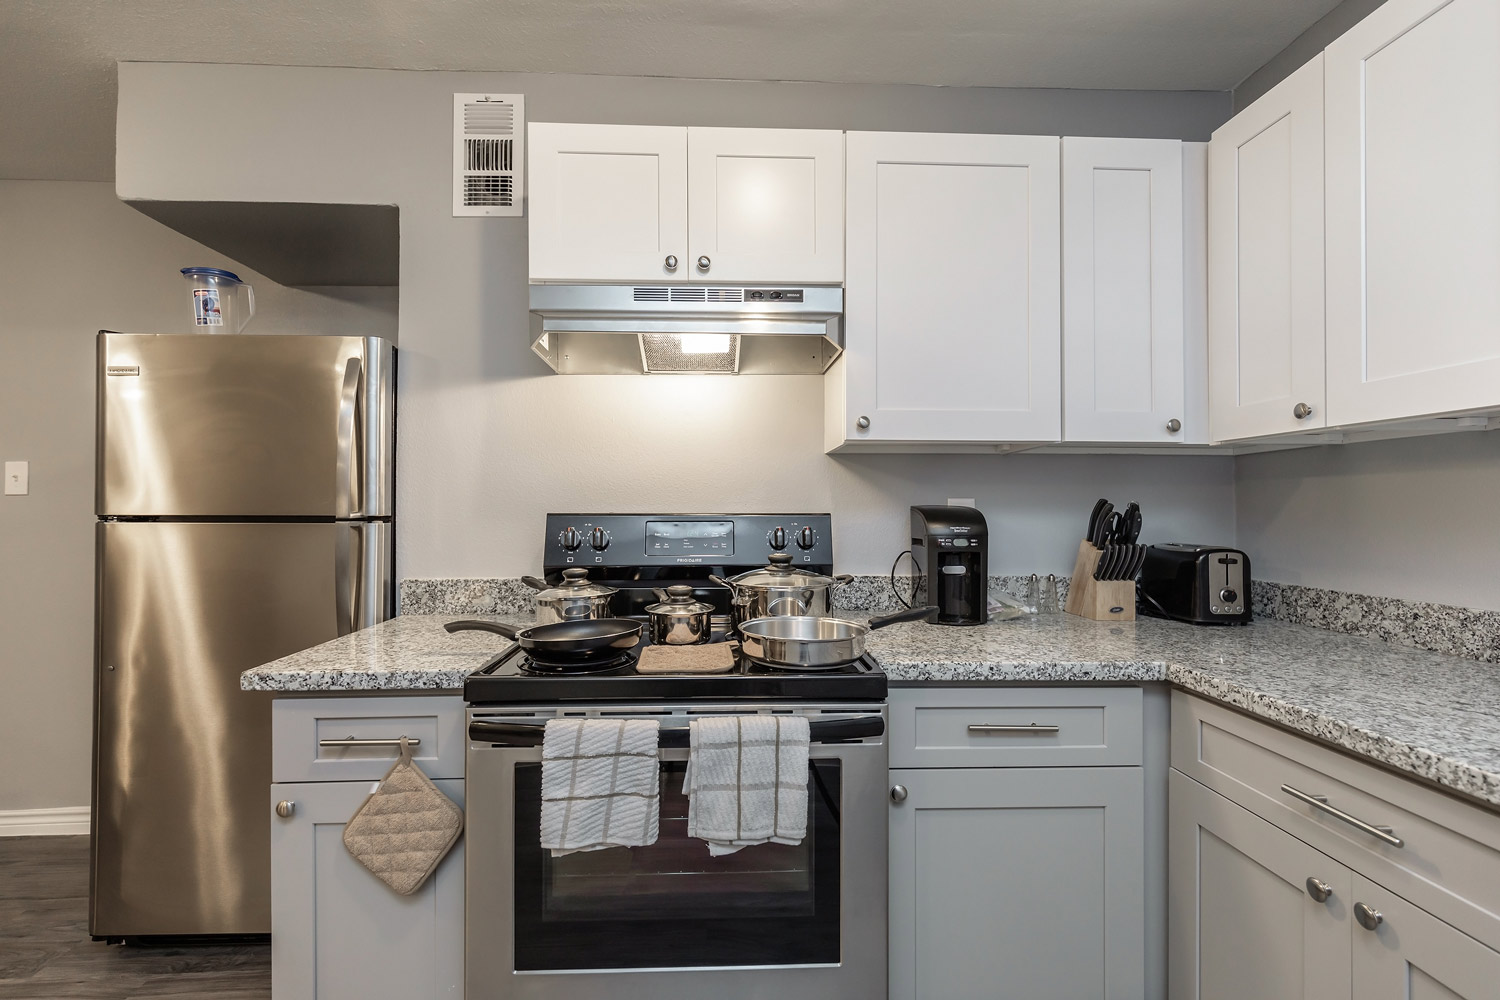 Cooking Range at The Five Points at Texas Apartments in Texas City, Texas